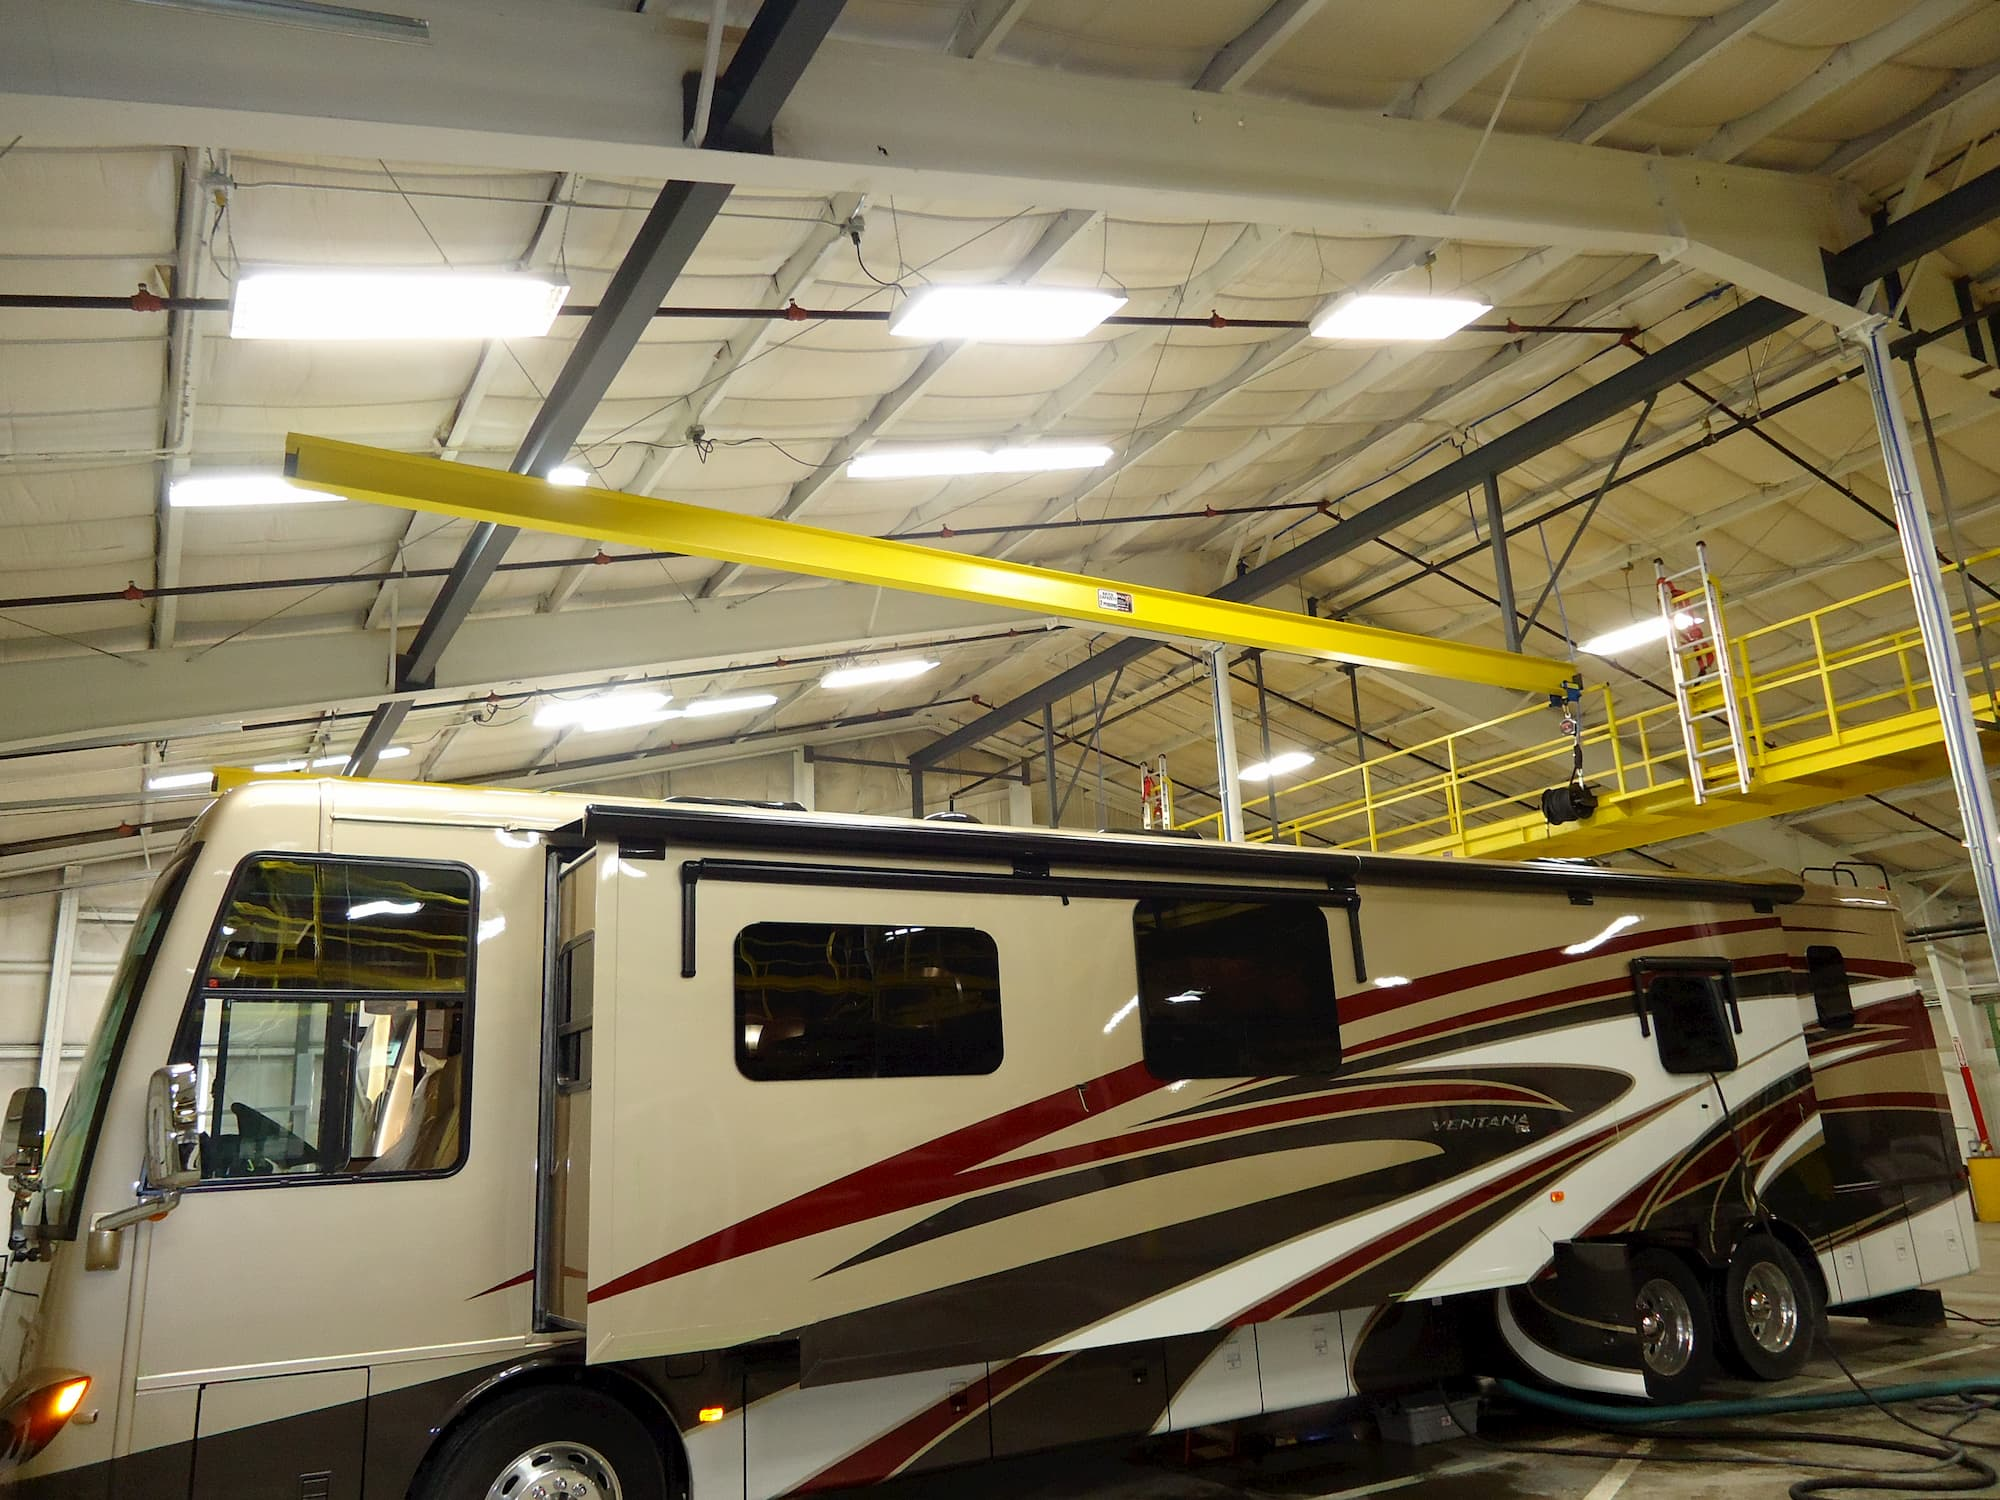 Fall Protection System (Beam Style)